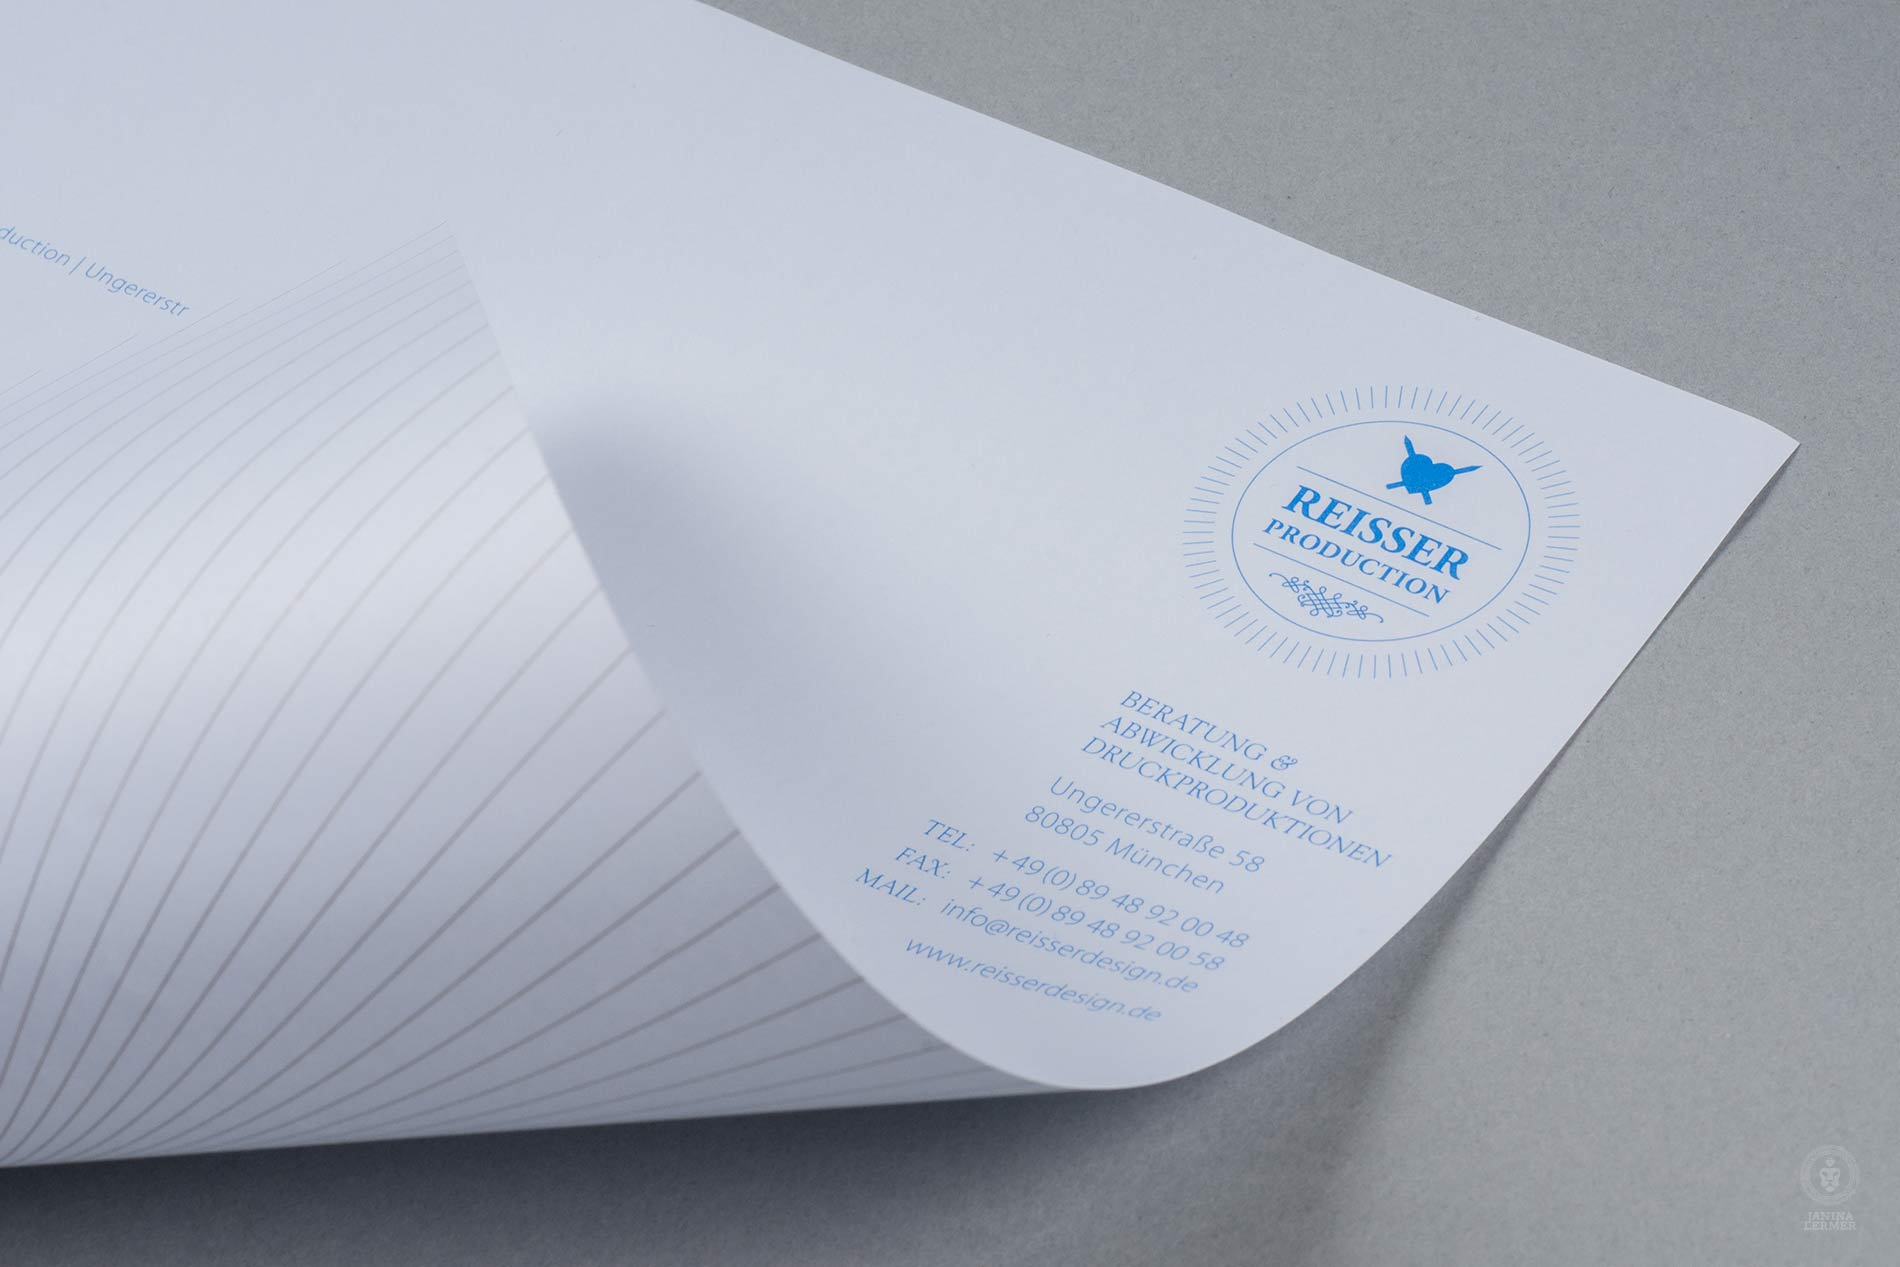 Janina-Lermer-Markengestaltung-Branddesign-Corporate-Design-Reisserdesign-Stationary-Briefpapier-Backside-Rueckseite